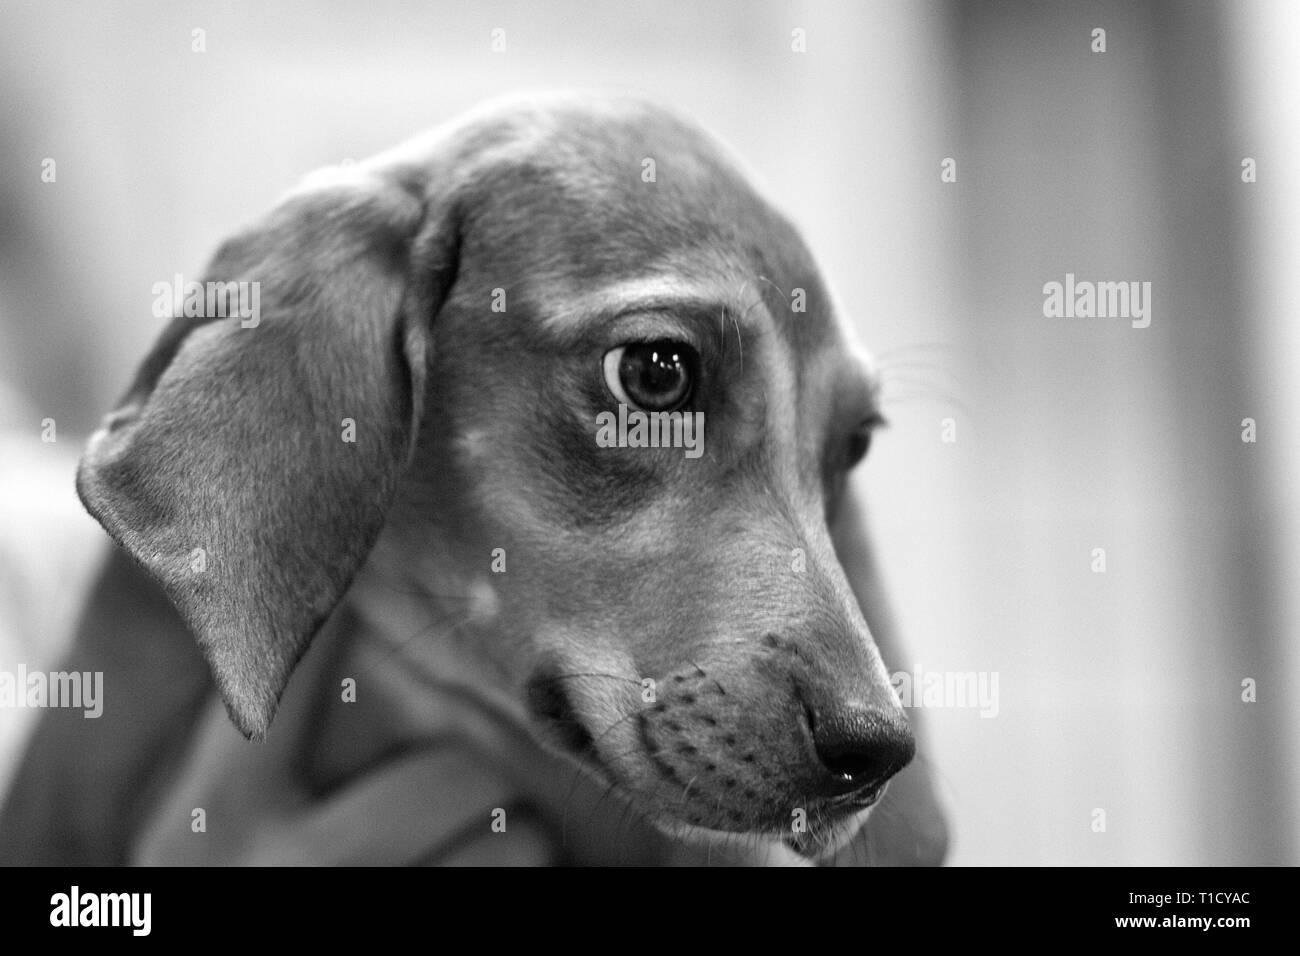 Close-up of a big-eyed dachshund puppy - Stock Image